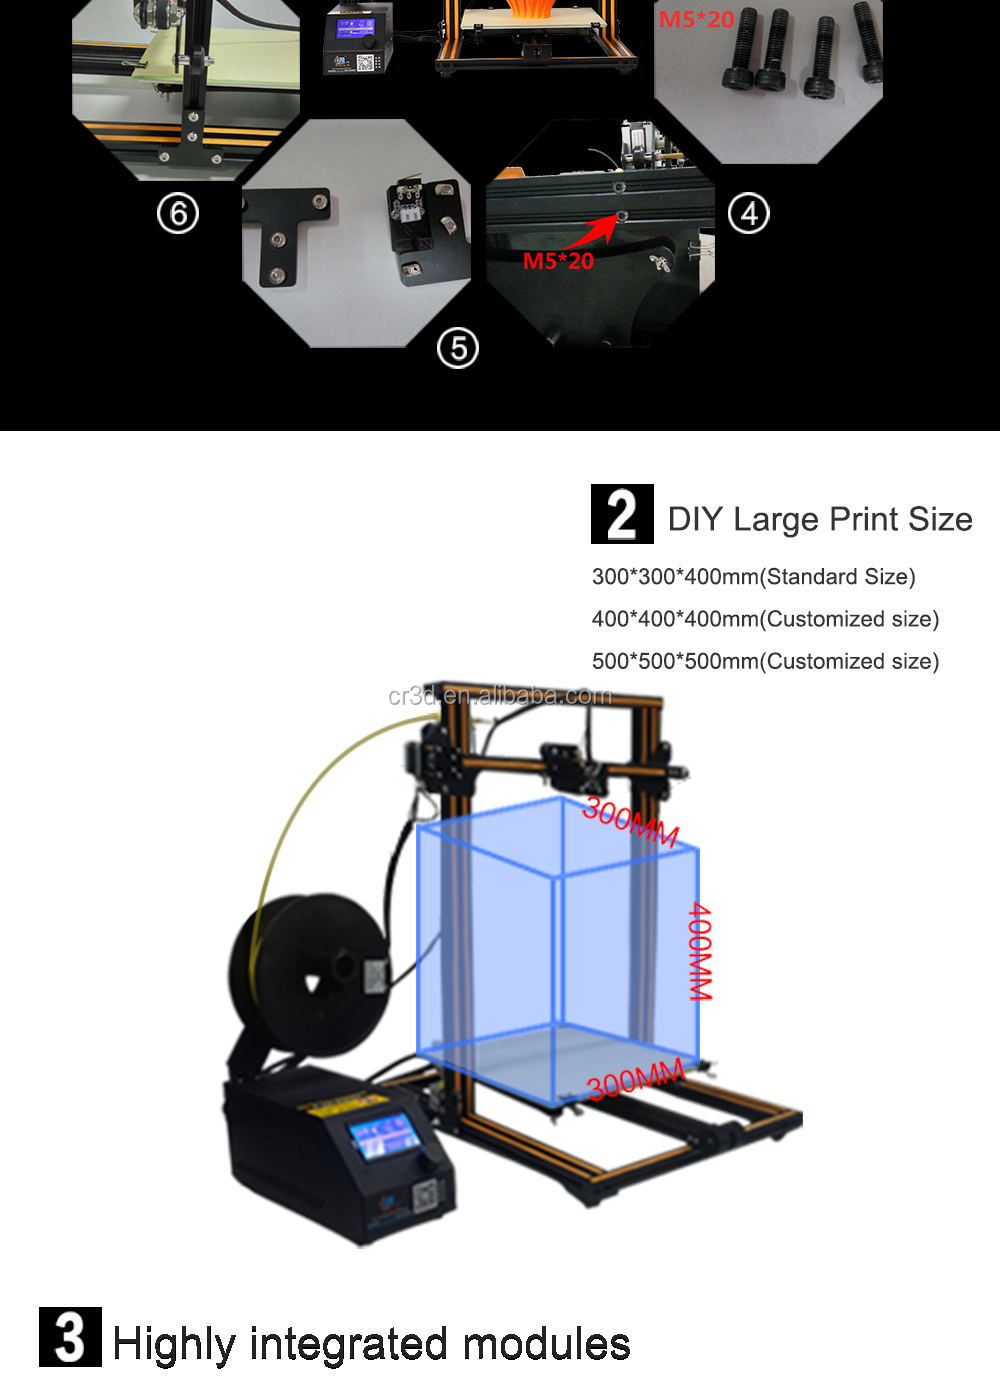 Creality CR-10S upgraded CR-10 dual z-axis lead screw filament sensor power printing size400x400x400 or 500x500x500